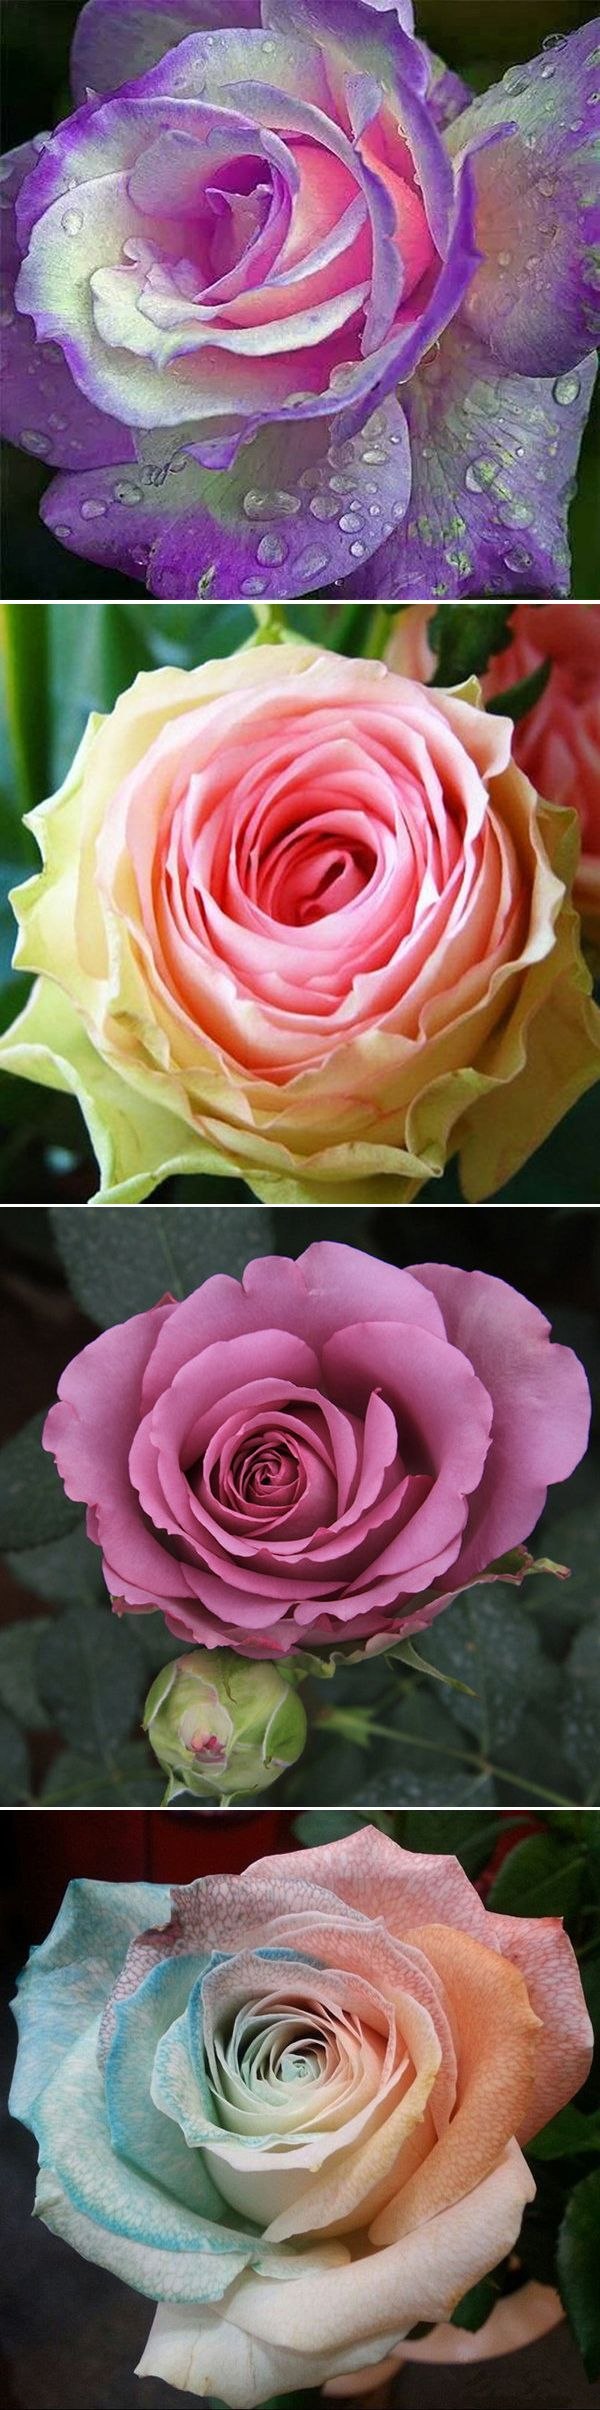 US$2.59 100Pcs Multicolor Rose Seeds Purple Pink Heart Roses Seeds Multicolor Garden Flowers